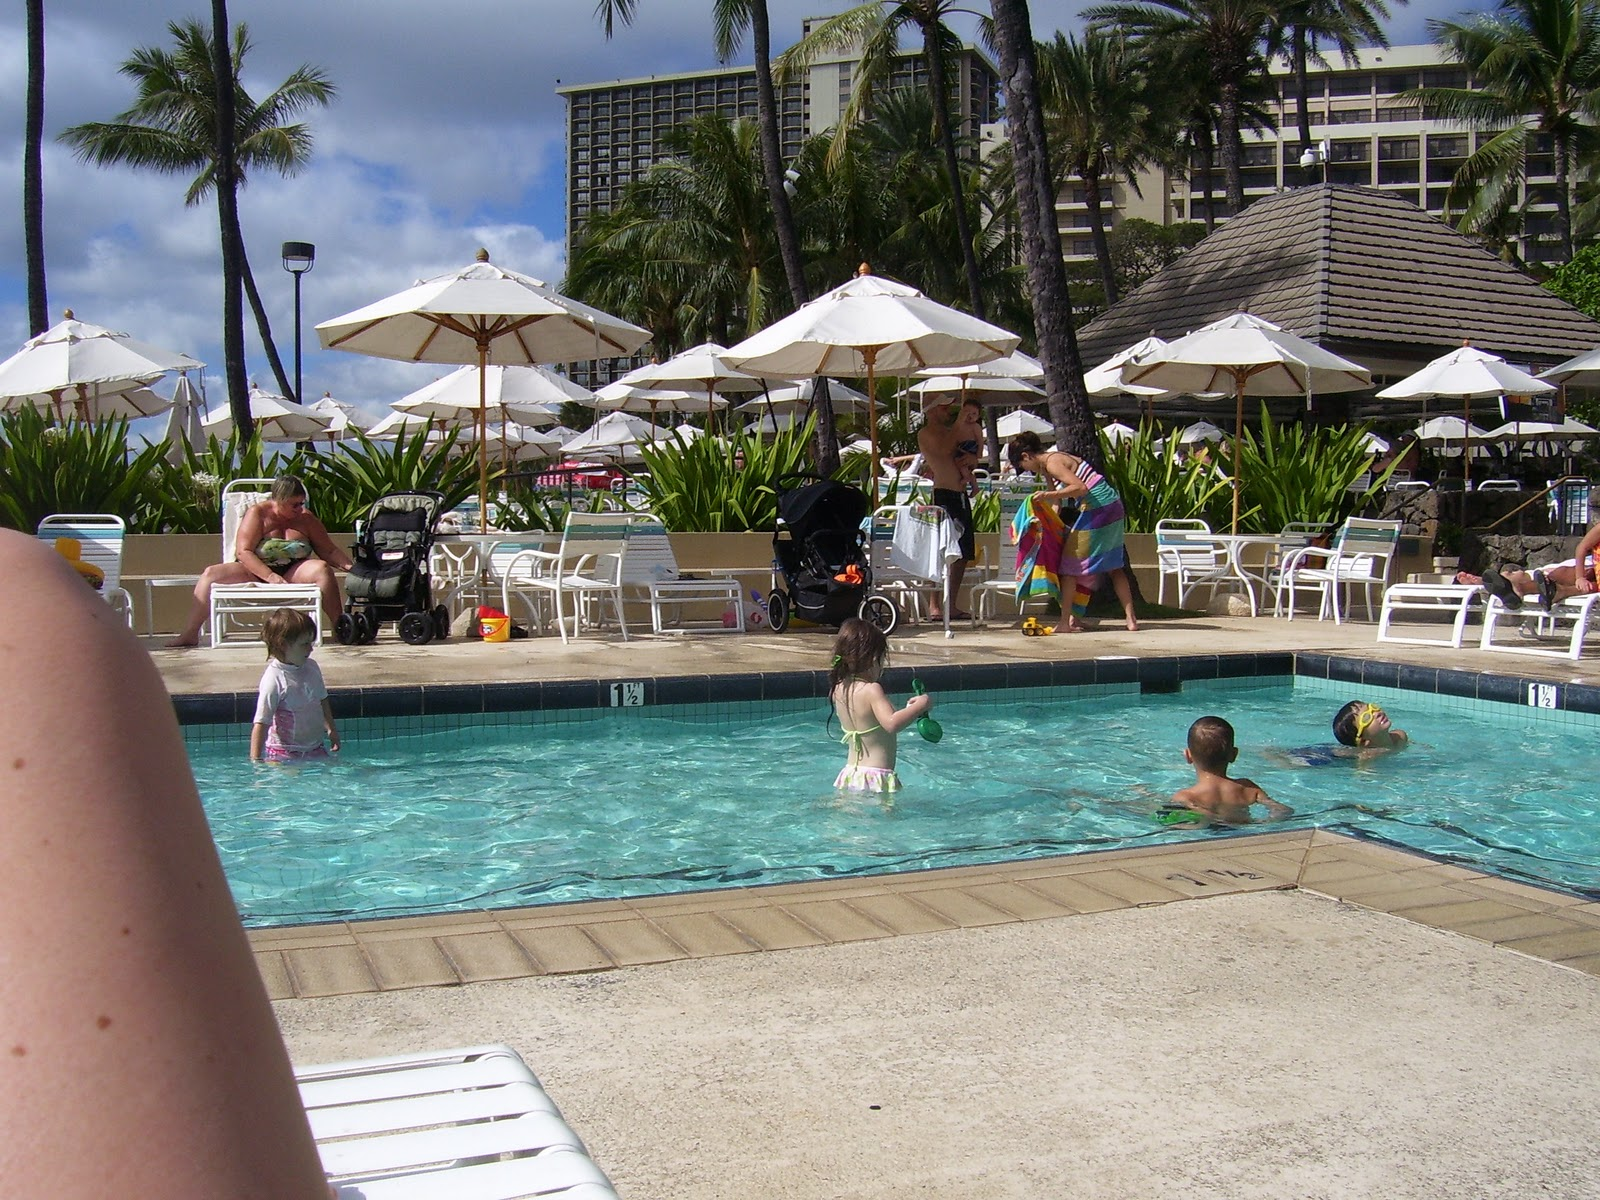 Hale Koa military resort on Waikiki Beach Honolulu Hawaii